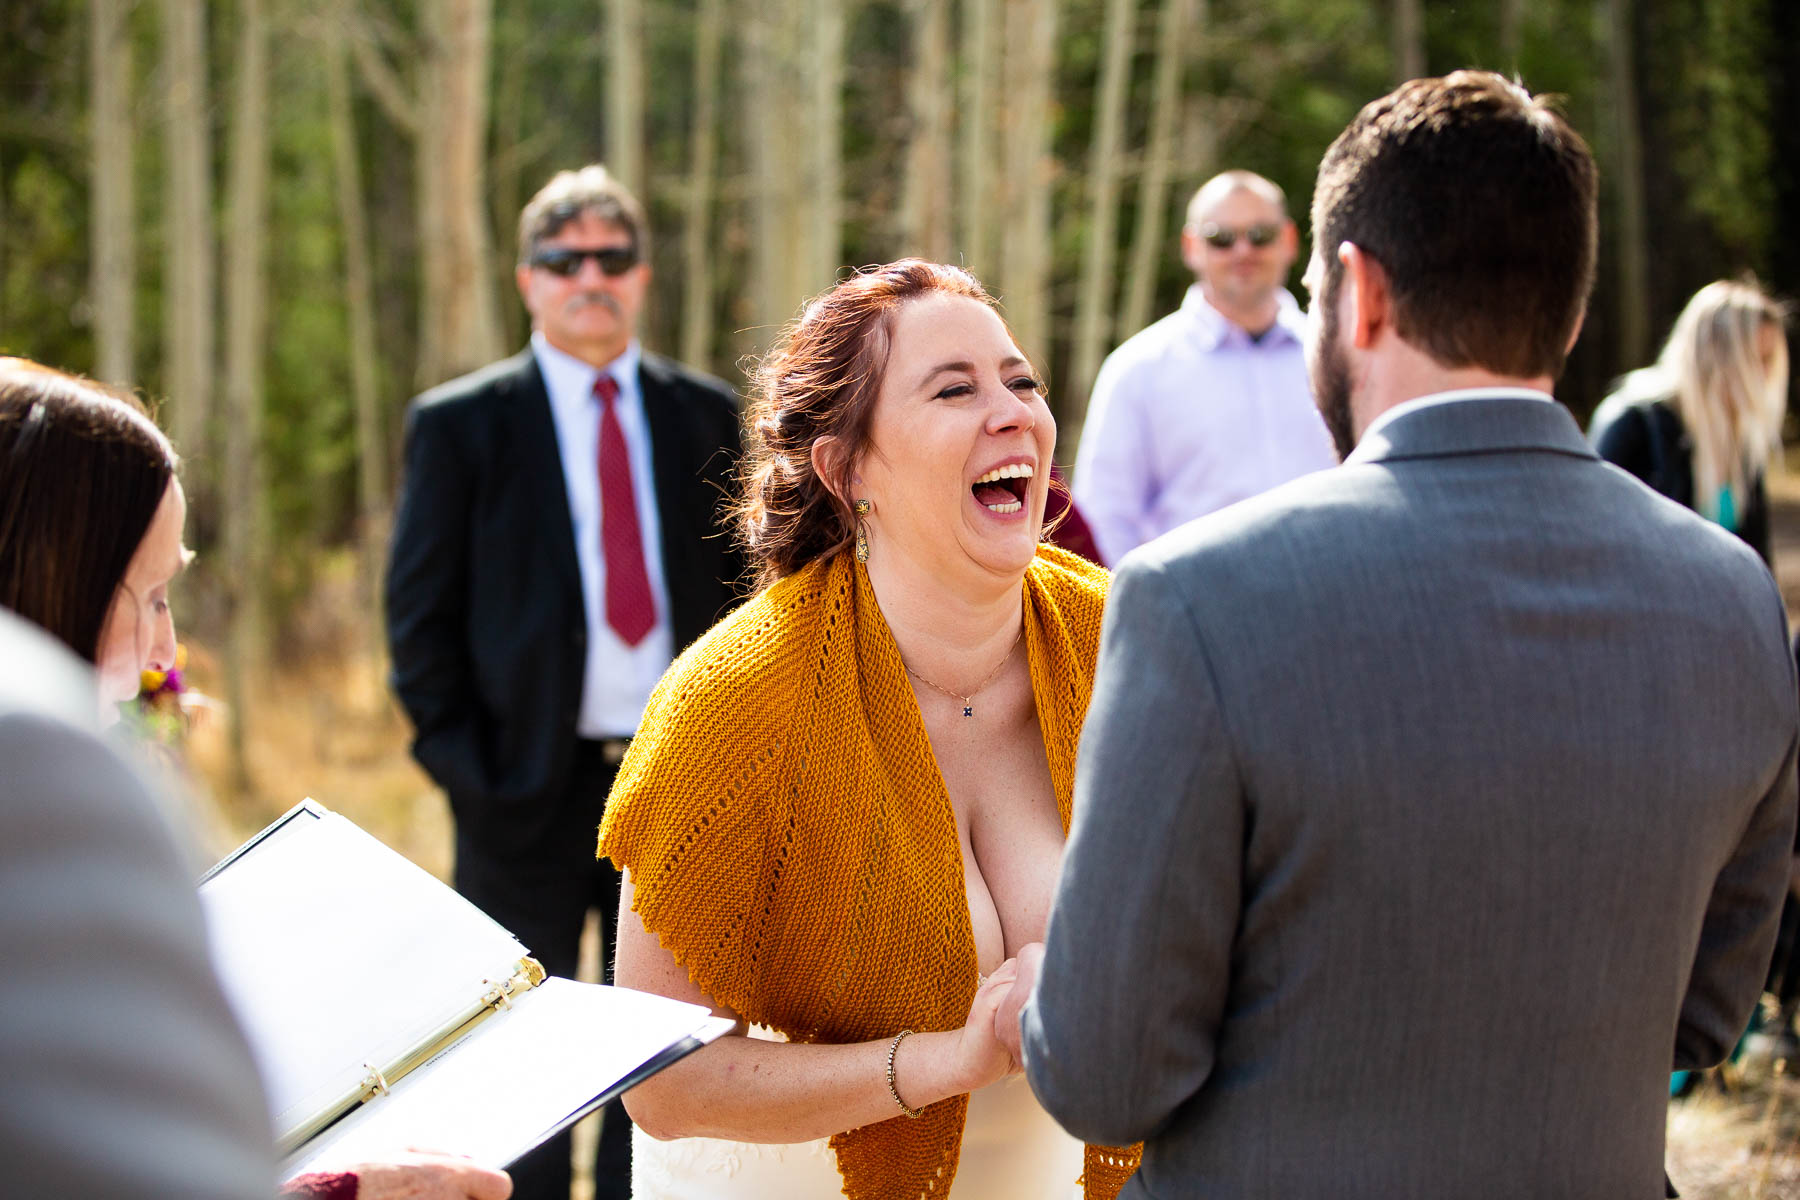 CO Images from a Kenosha Pass Wedding | The groom recites his vows to the bride at their outdoor elopement ceremony